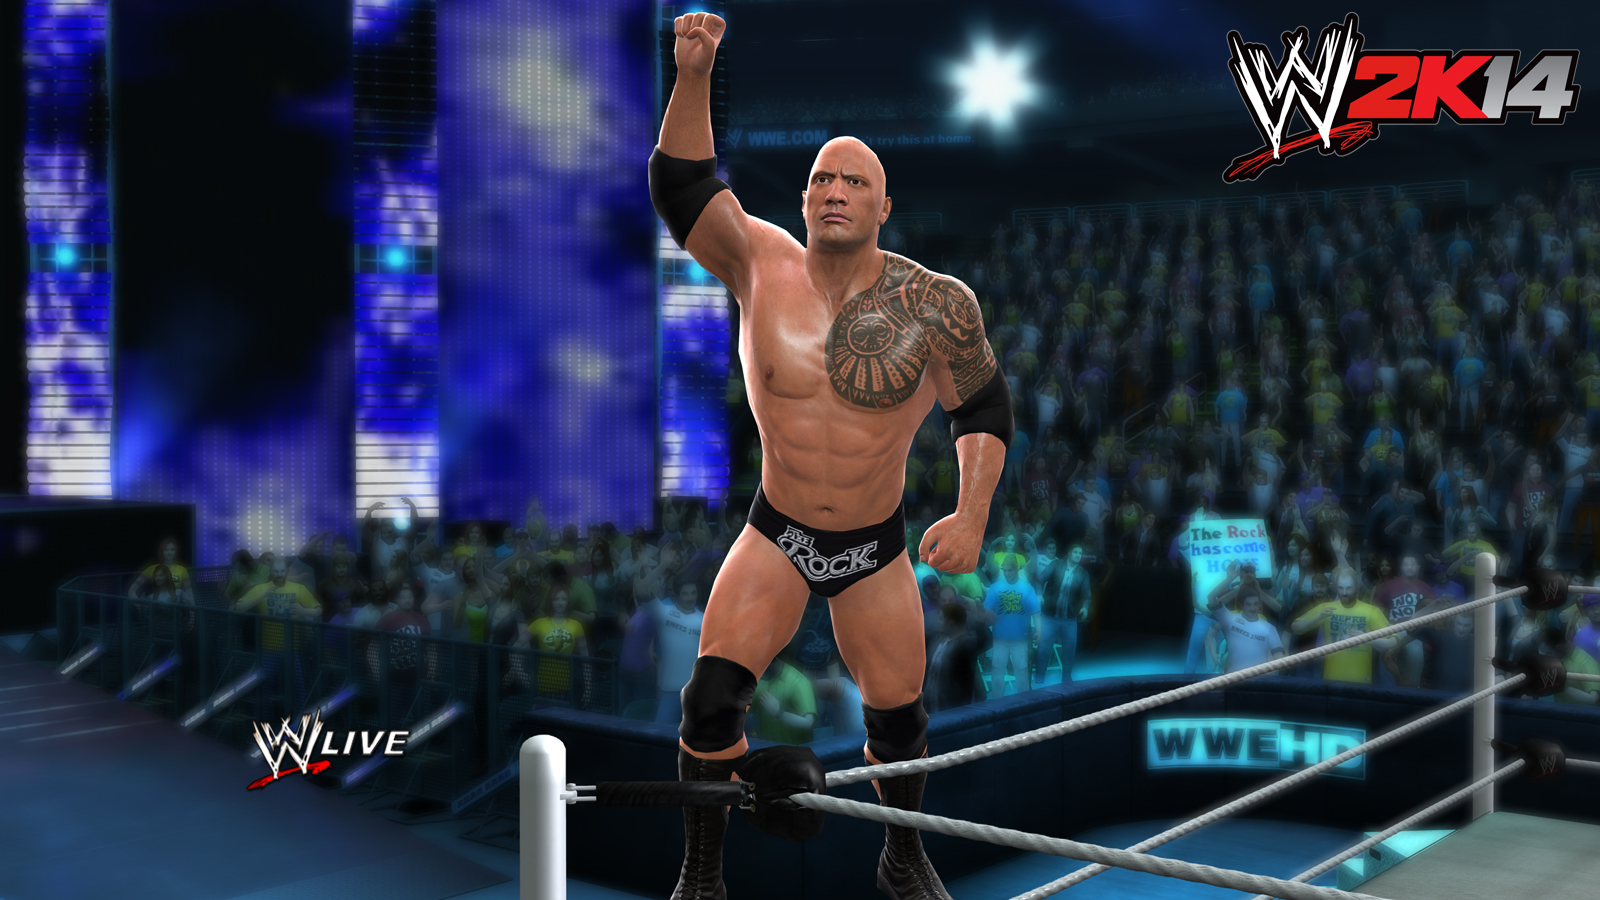 WWE 2K14's transition from THQ to 2K has had limited effects so far